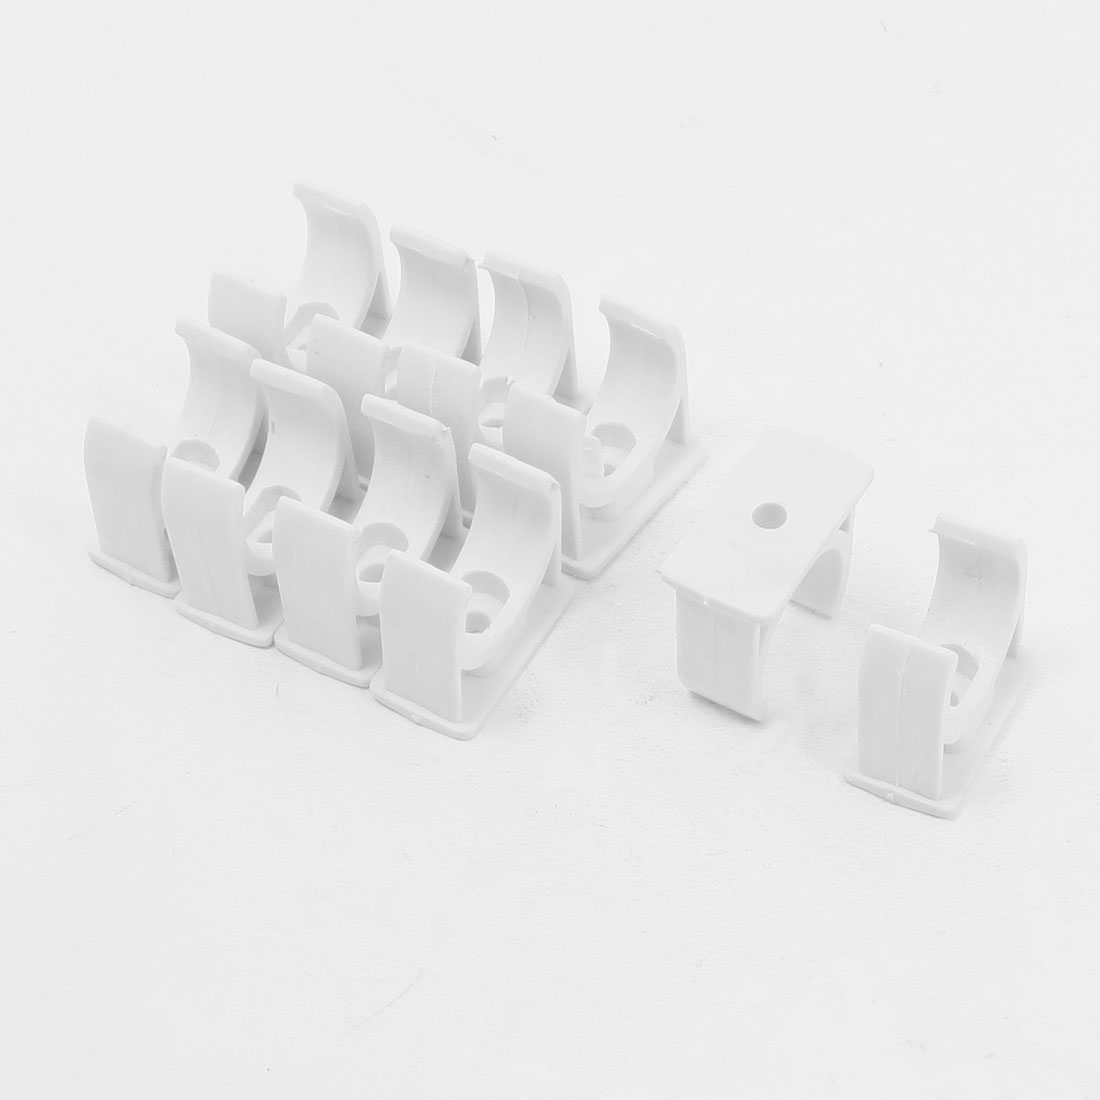 10 Pcs 25mm Diameter White PVC Water Supply Pipe Clamps Clips Fittings